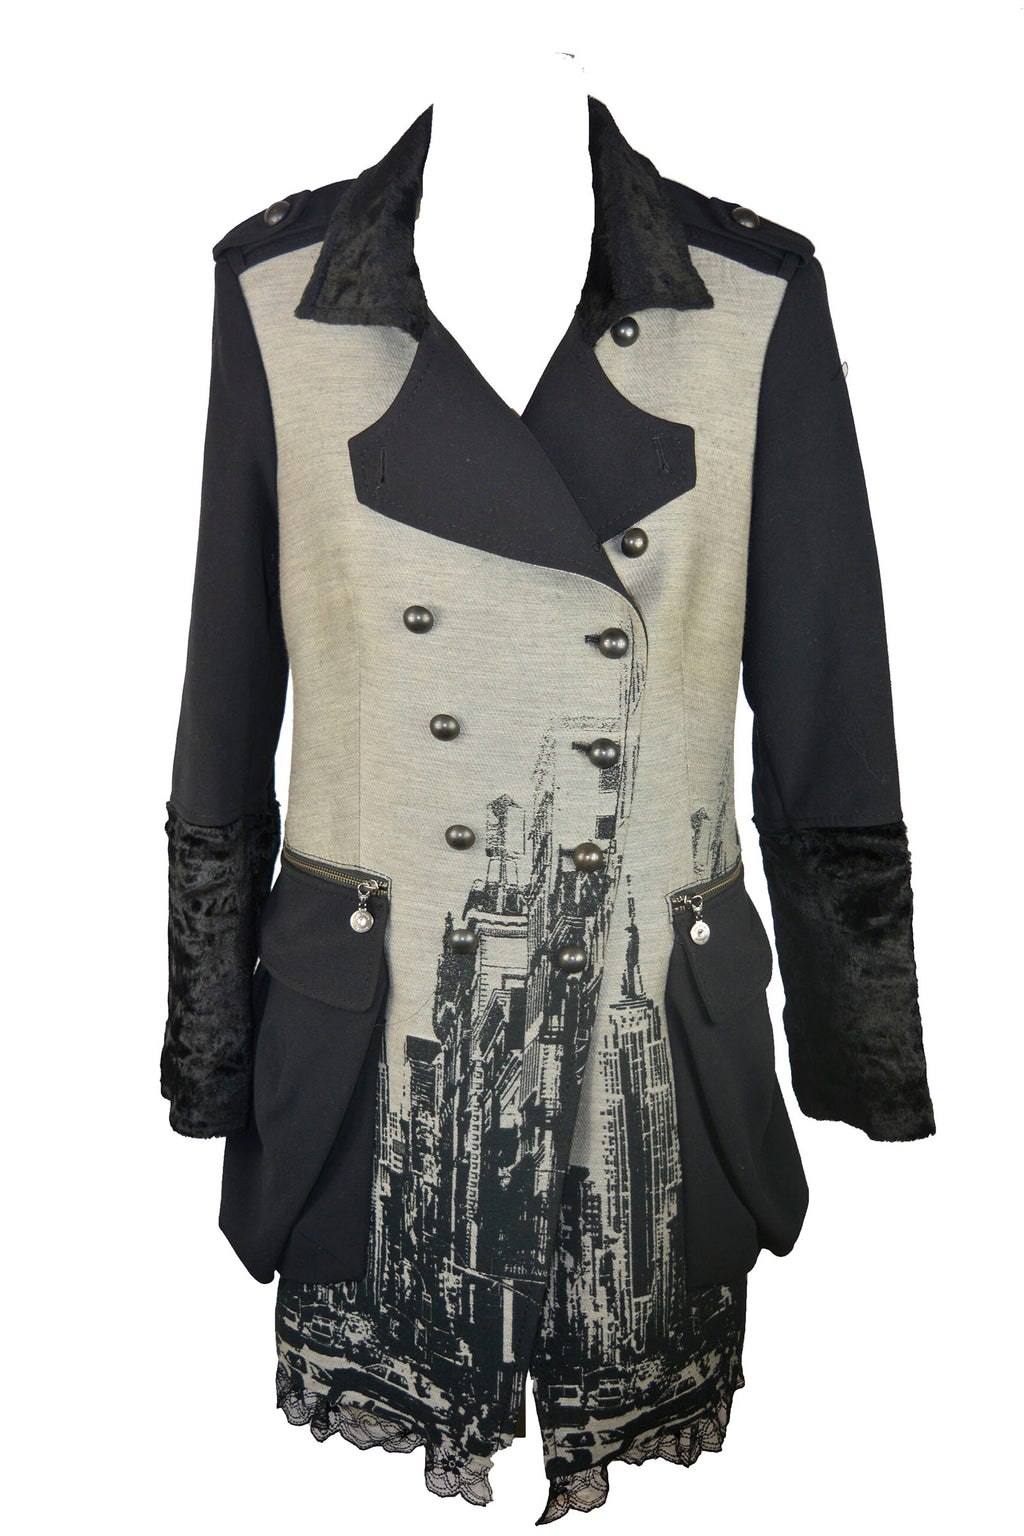 Ana Sousa Military Coat with City Pattern and Lace Details Size 42 (EU)